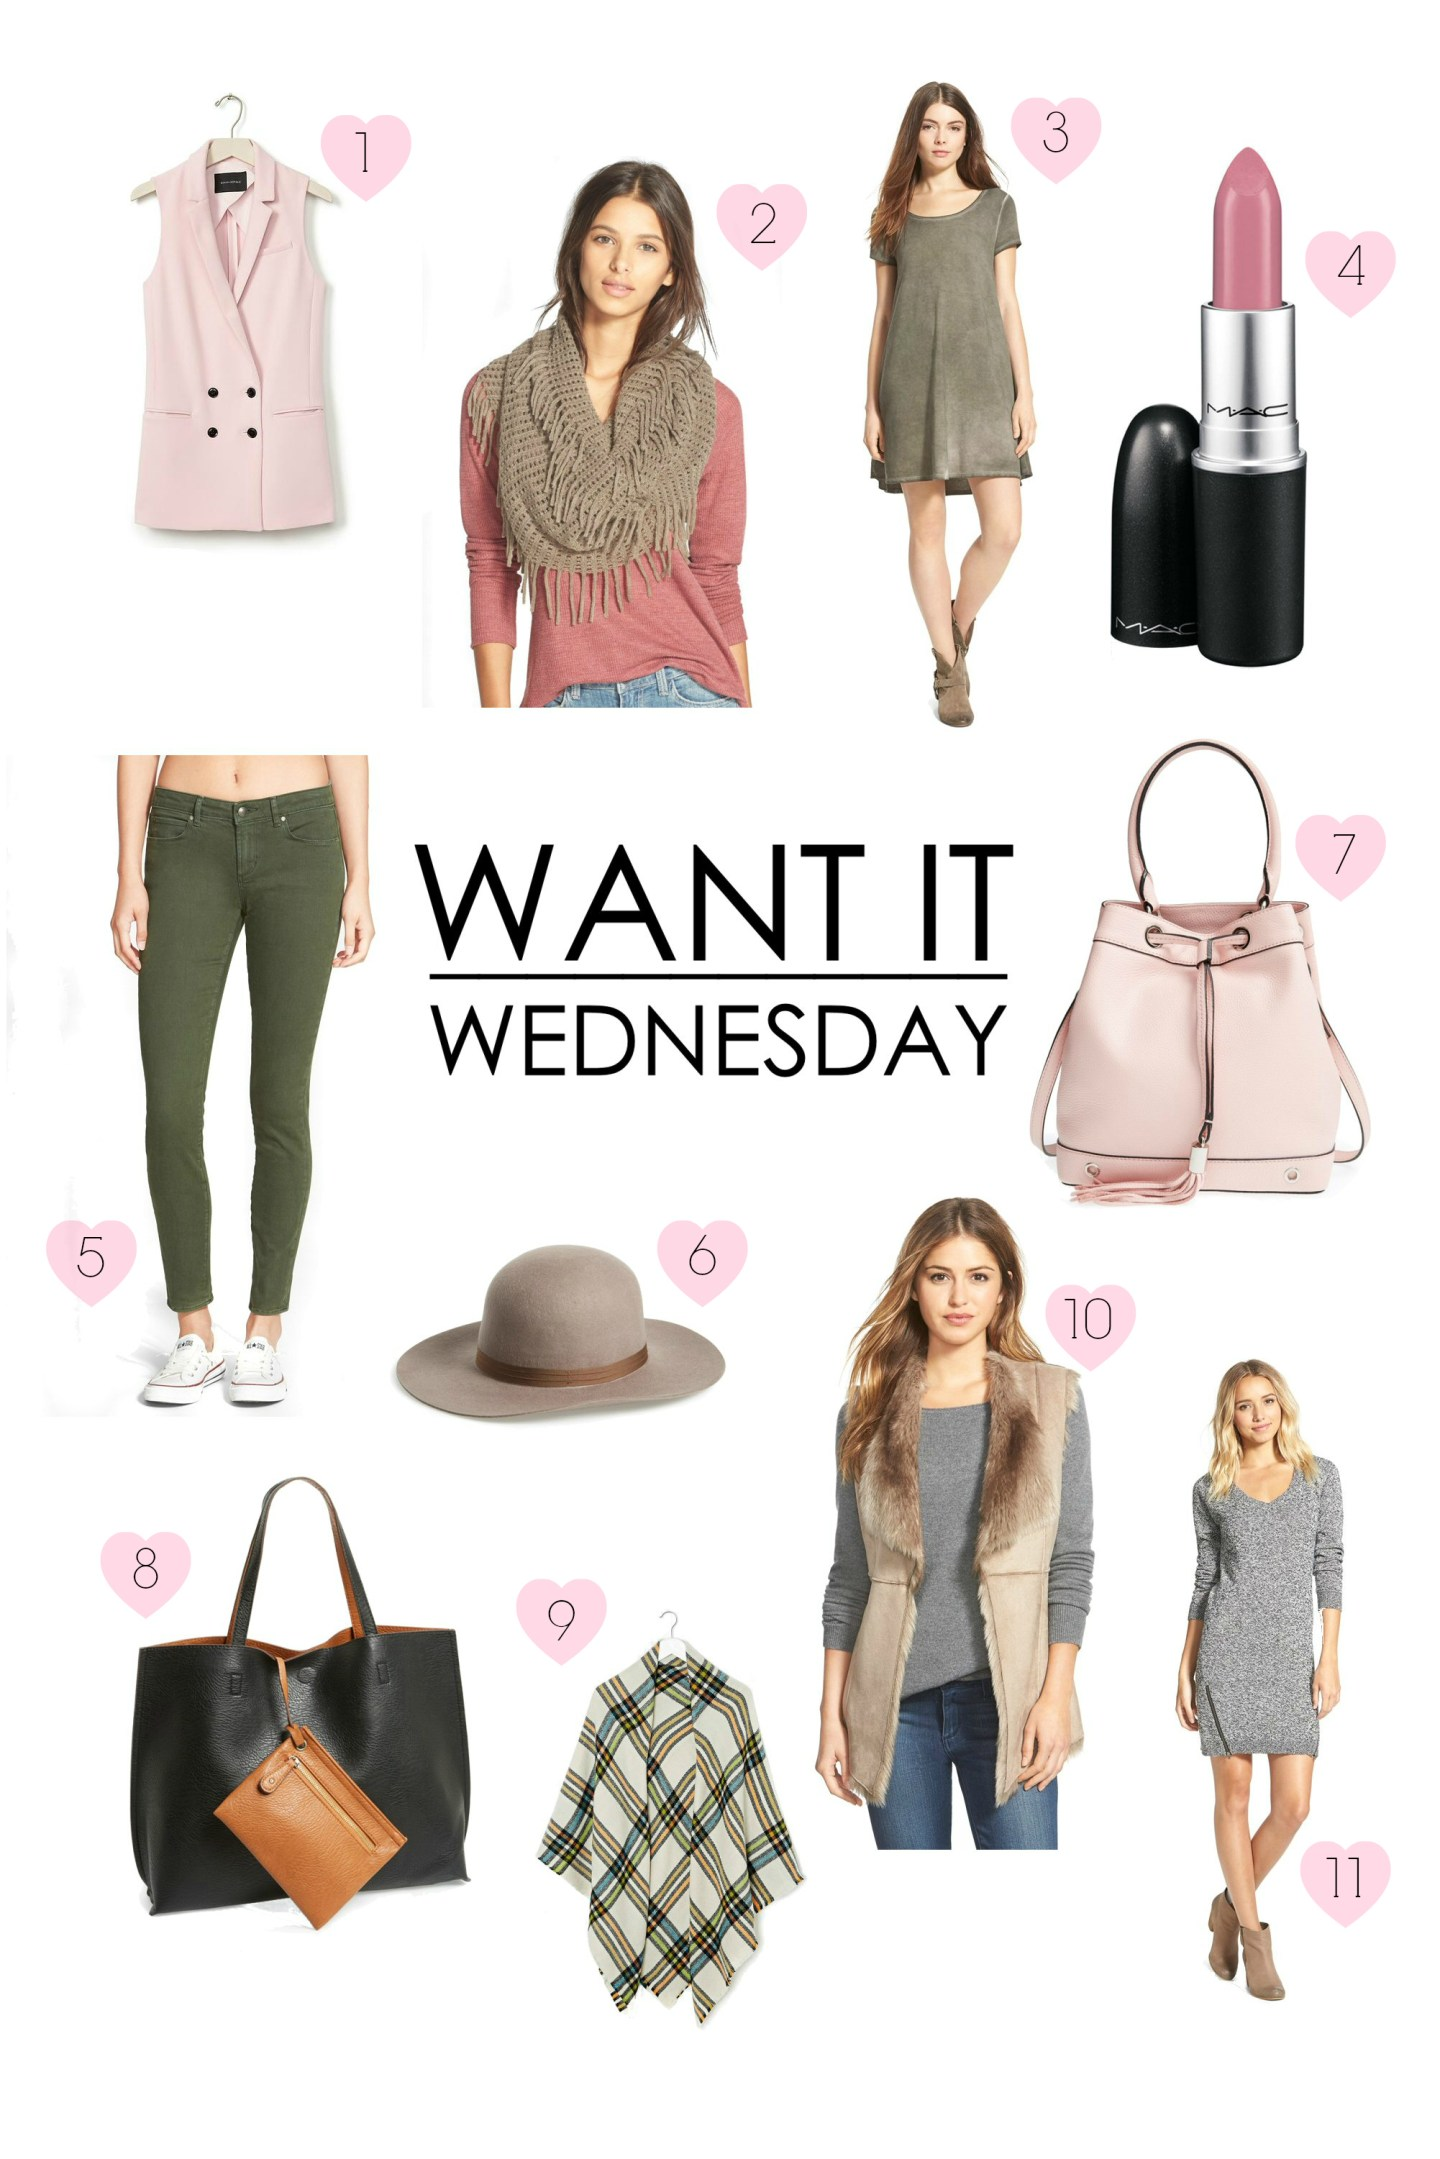 Want it Wednesday!